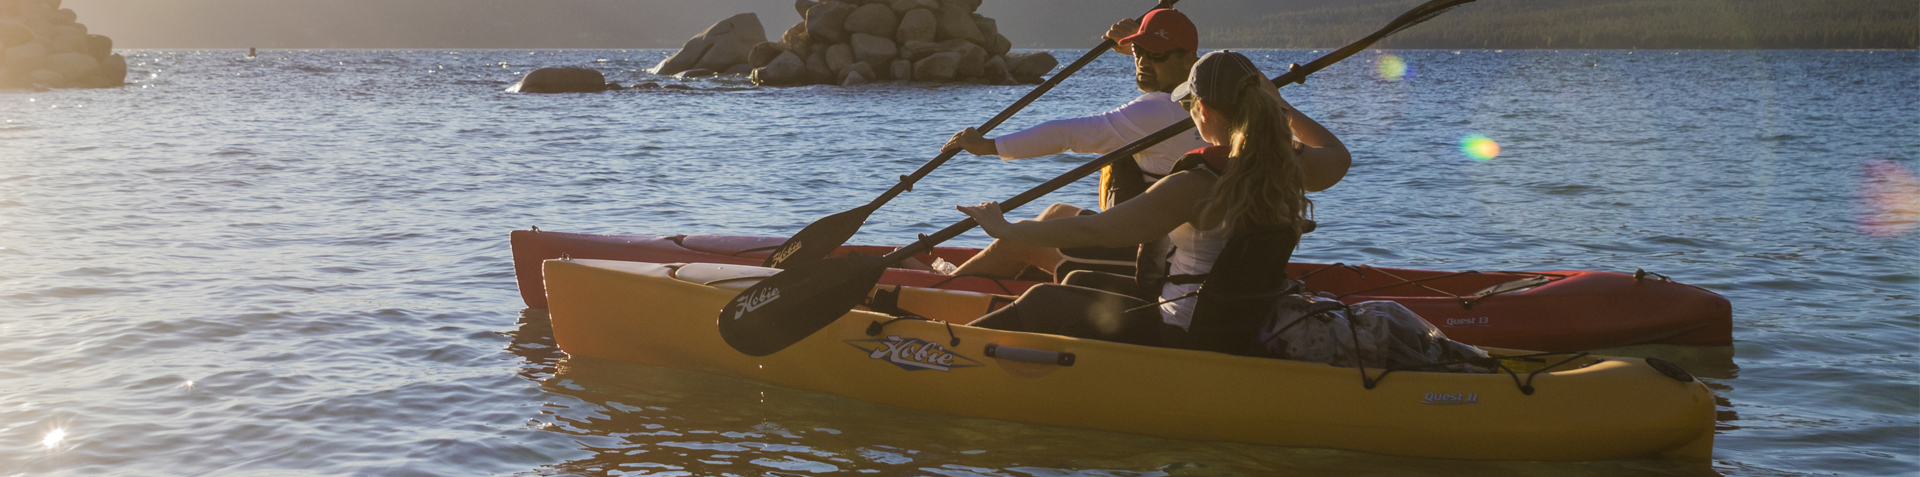 Kayaks: Quest 13 by Hobie - Image 2793